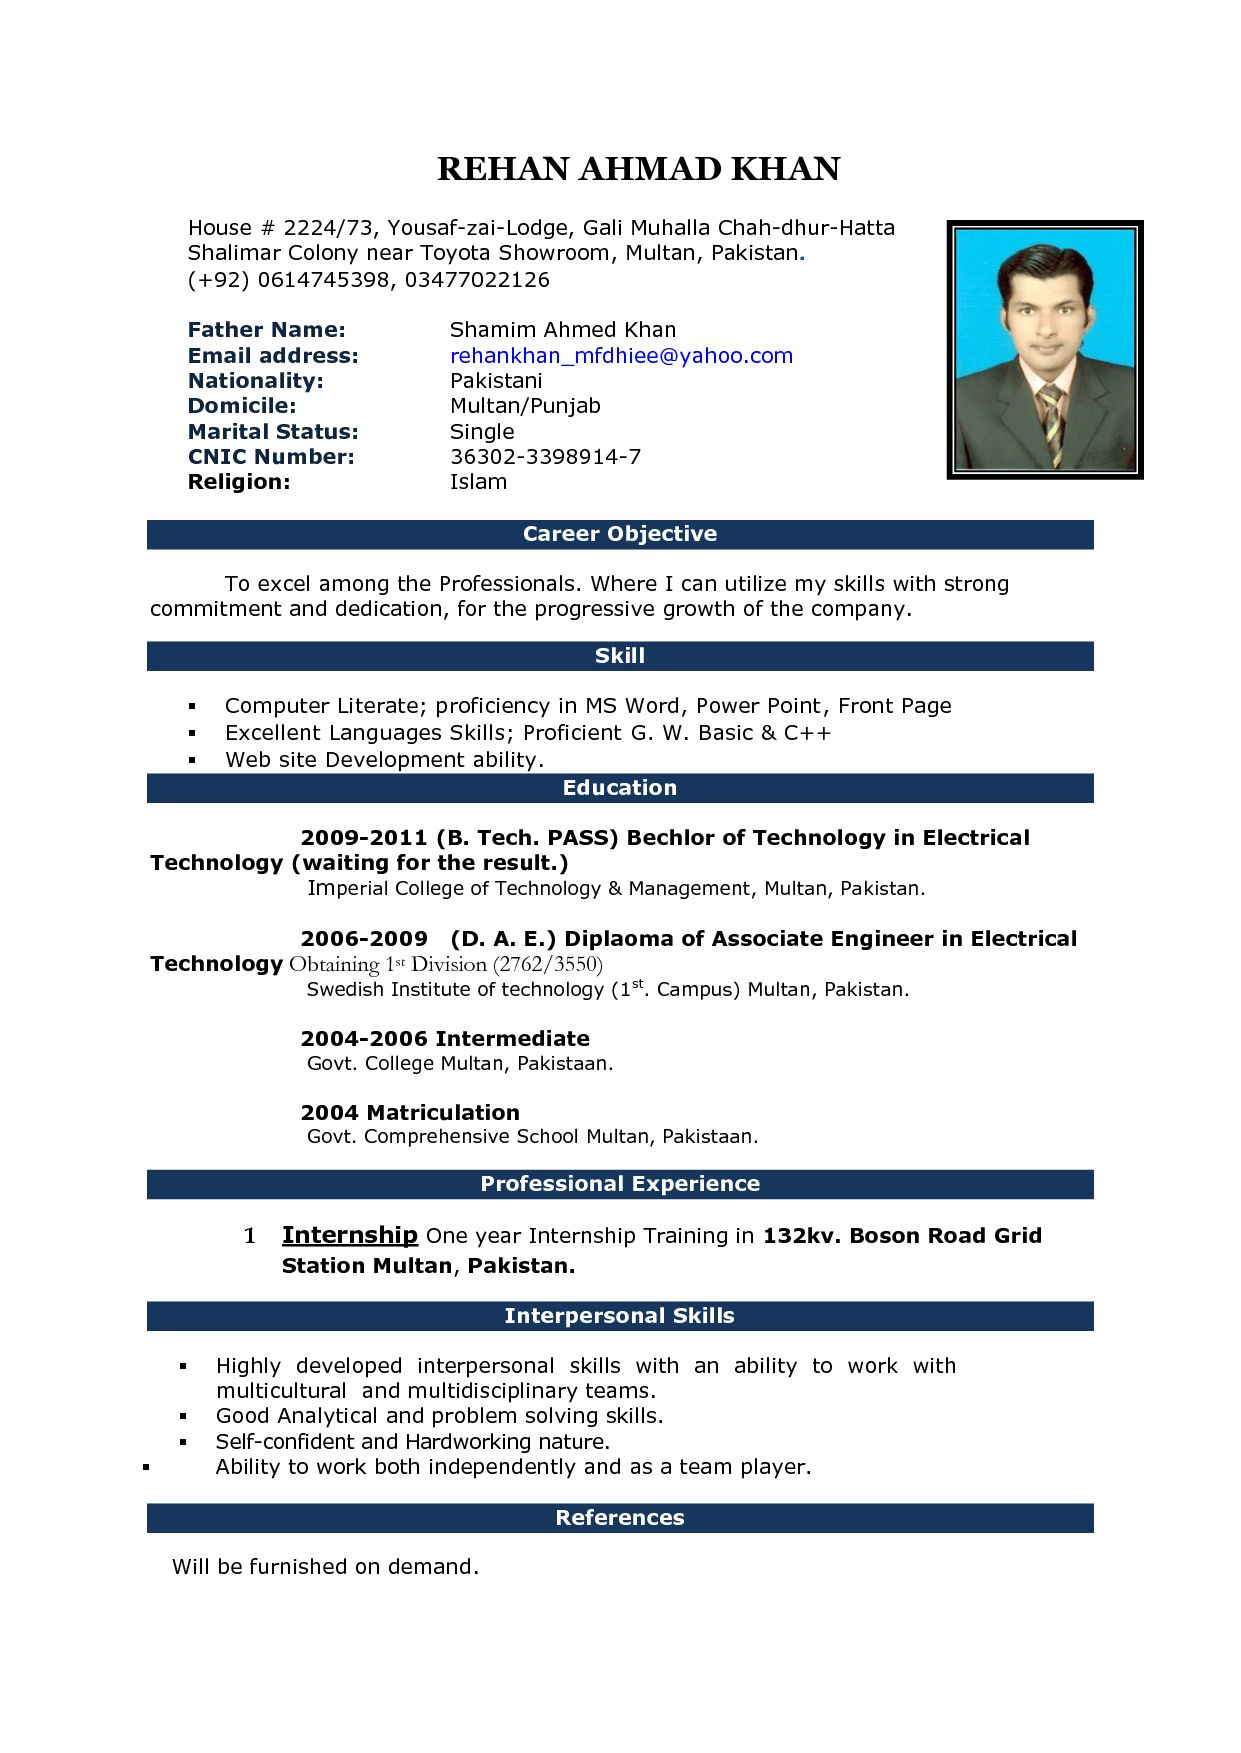 Fresher Simple Resume Format Download In Ms Word